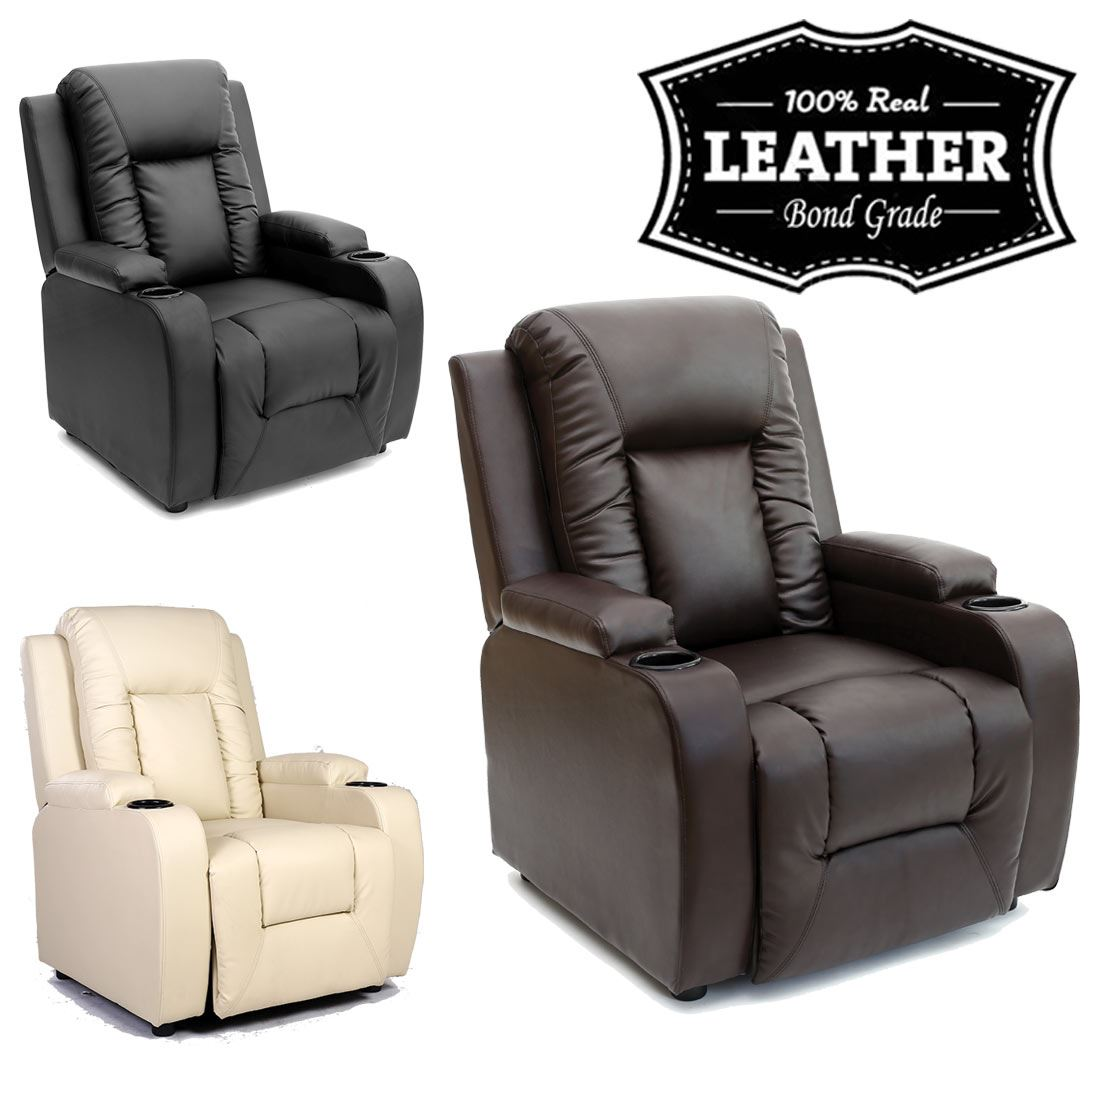 Leather Reclining Chairs Details About Oscar Leather Recliner W Drink Holders Armchair Sofa Chair Reclining Cinema